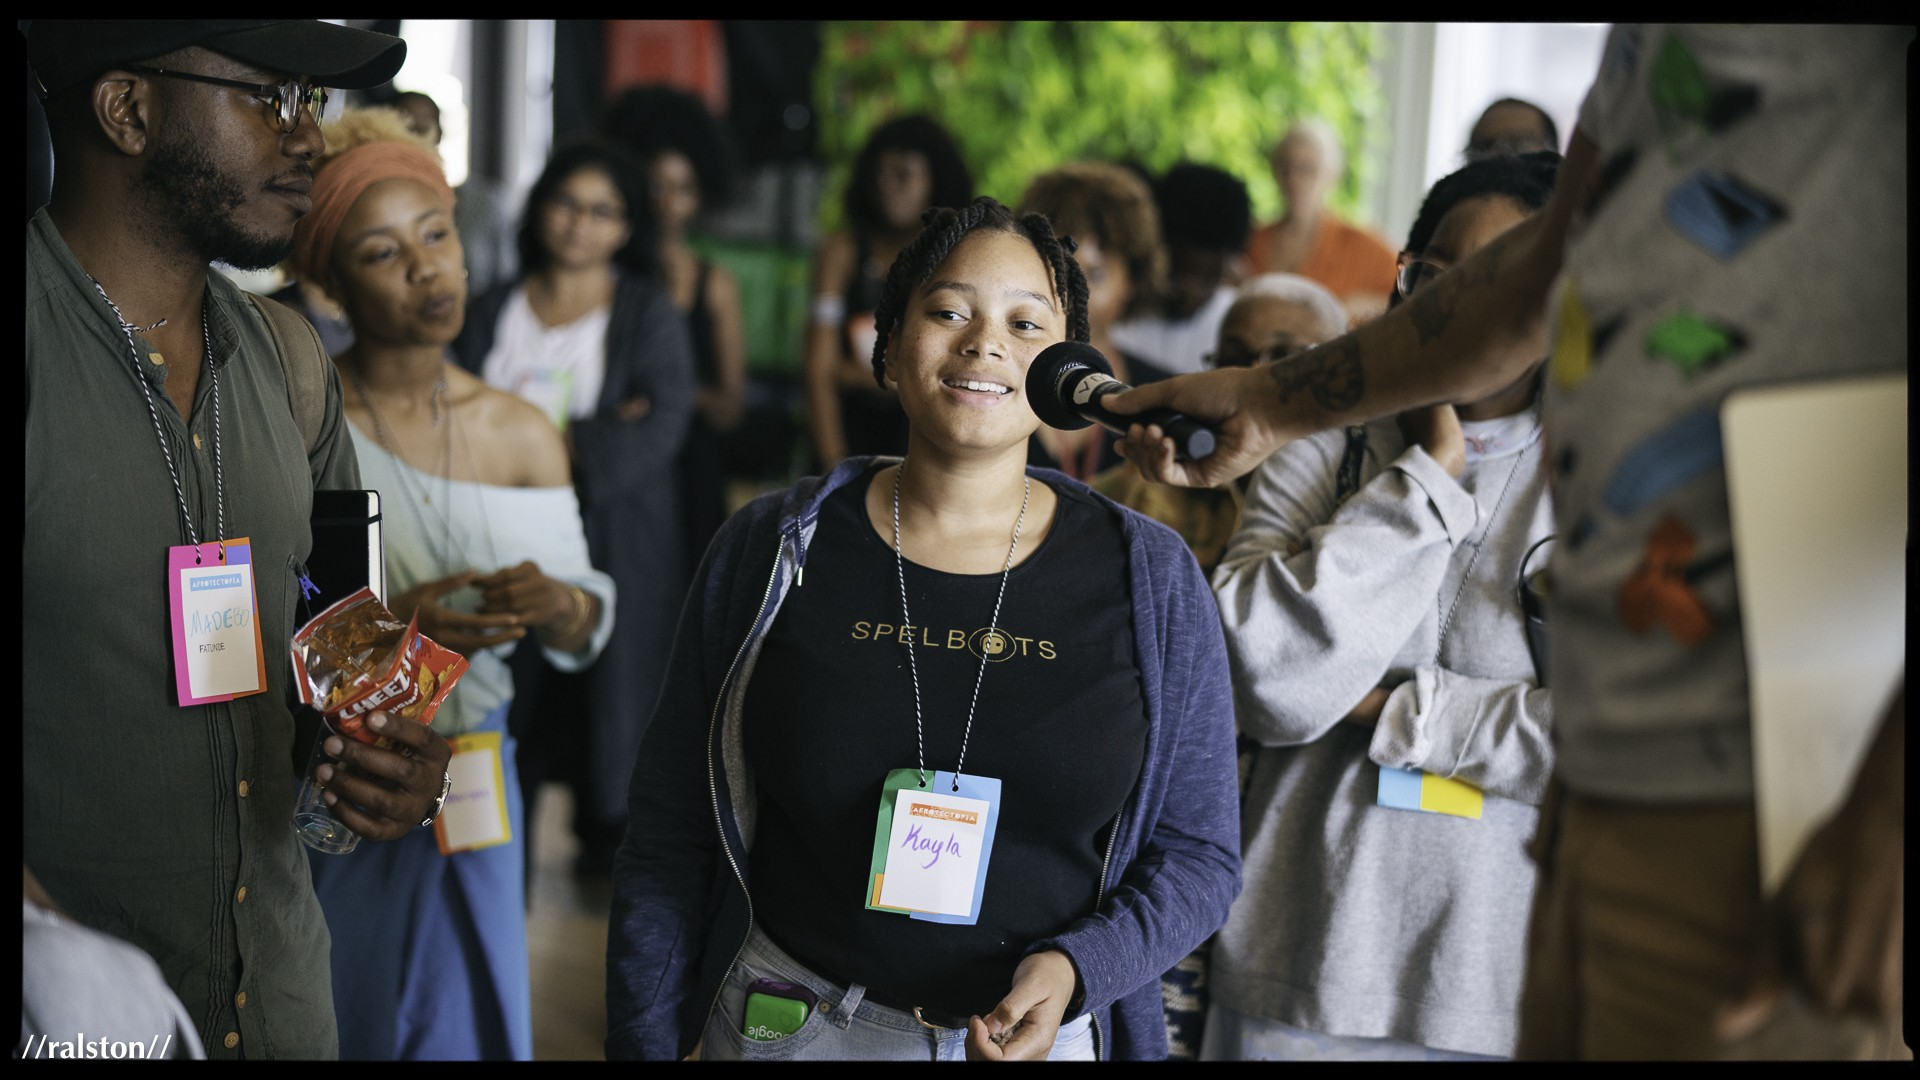 A young, smiling Black person is in a group being interviewed. The surrounding people wear badges that say Afrotectopia.